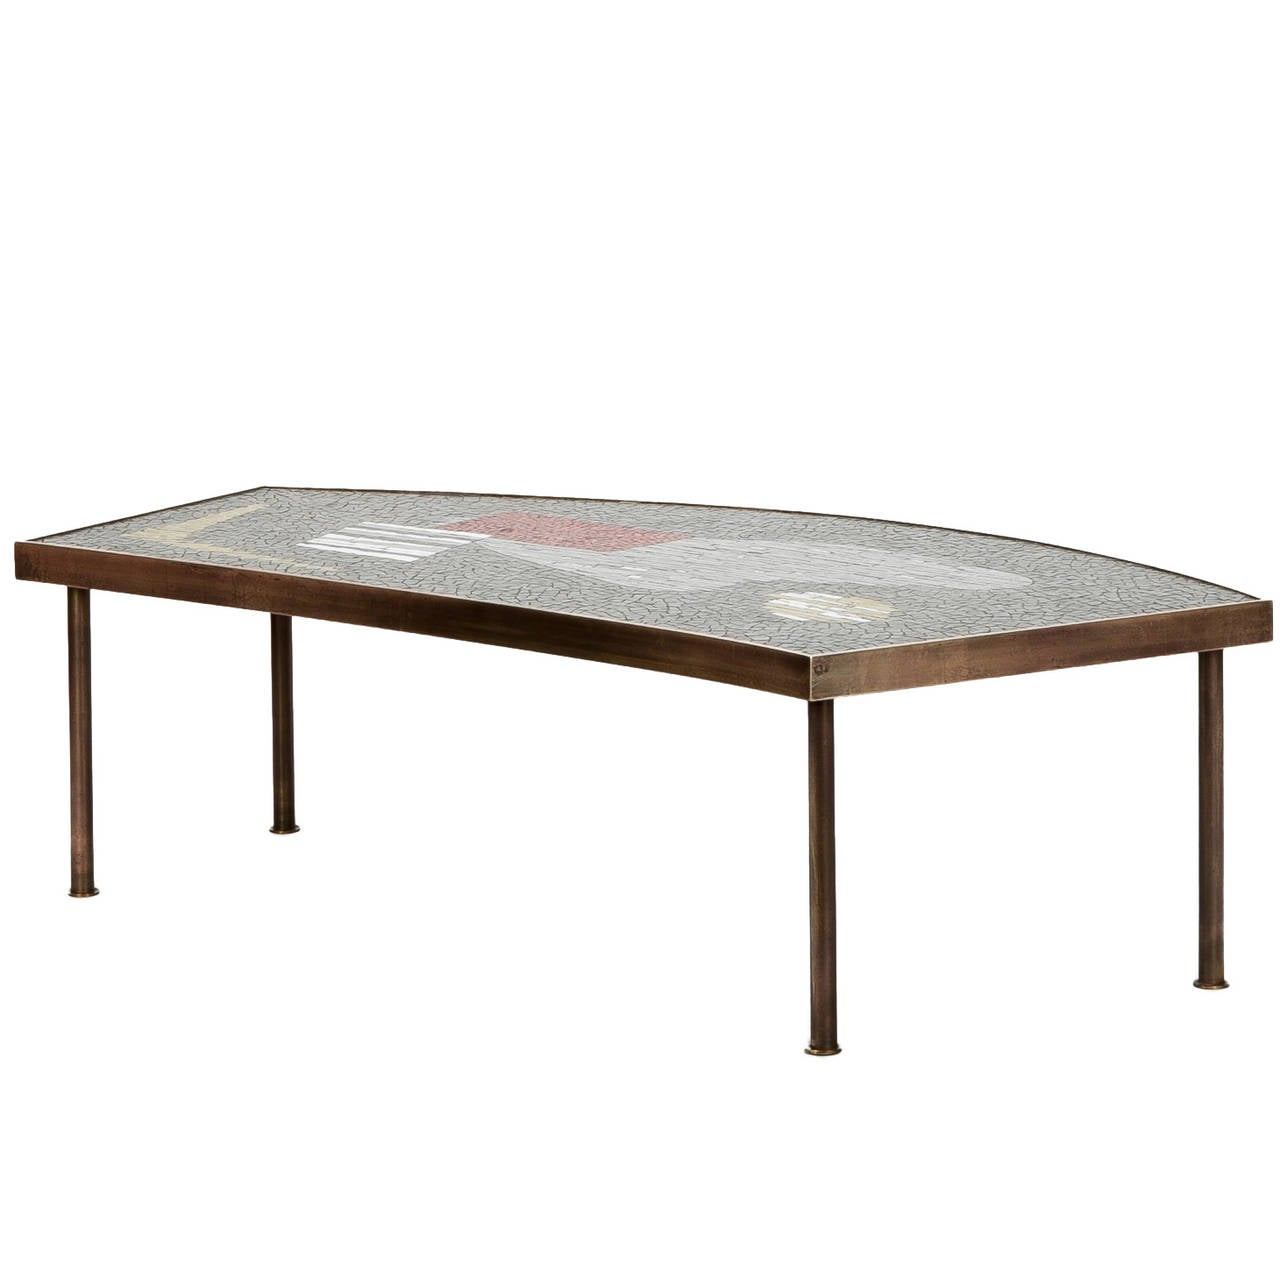 Mosaic Tiles And Brass Coffee Table By Berthold M Ller Oerlinghausen 1950s At 1stdibs